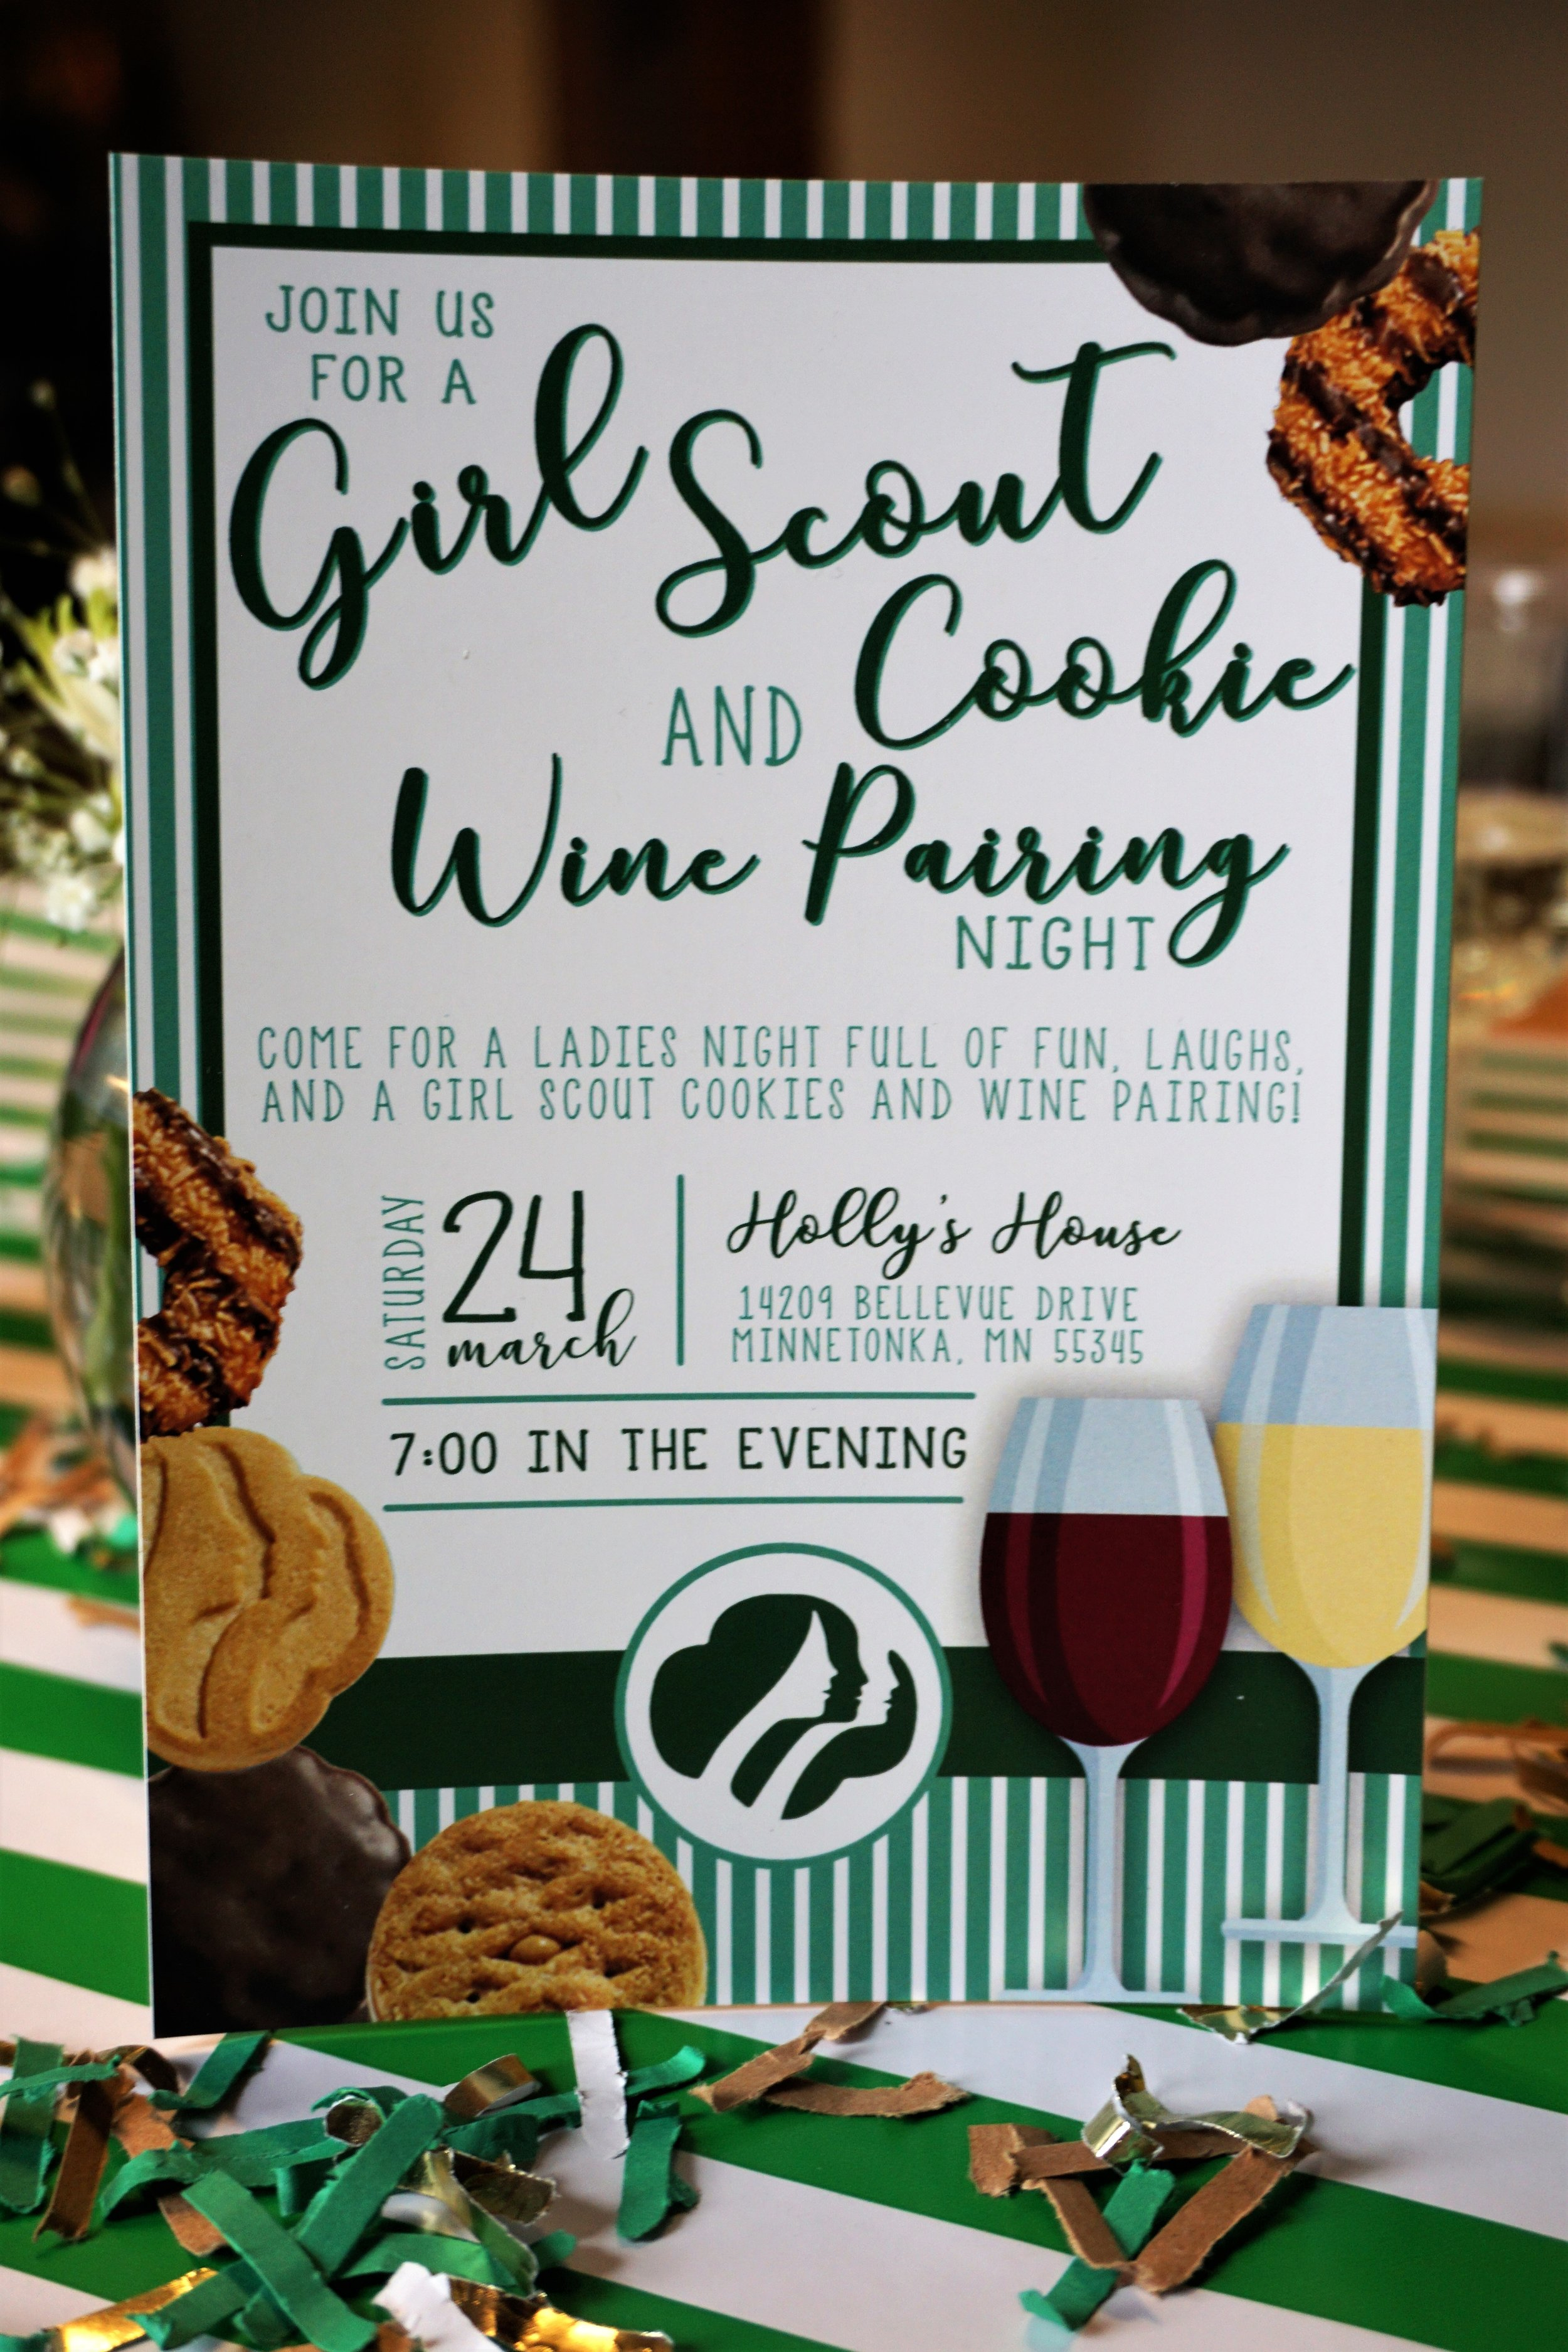 Girl Scout cookie and wine pairing party invitation.